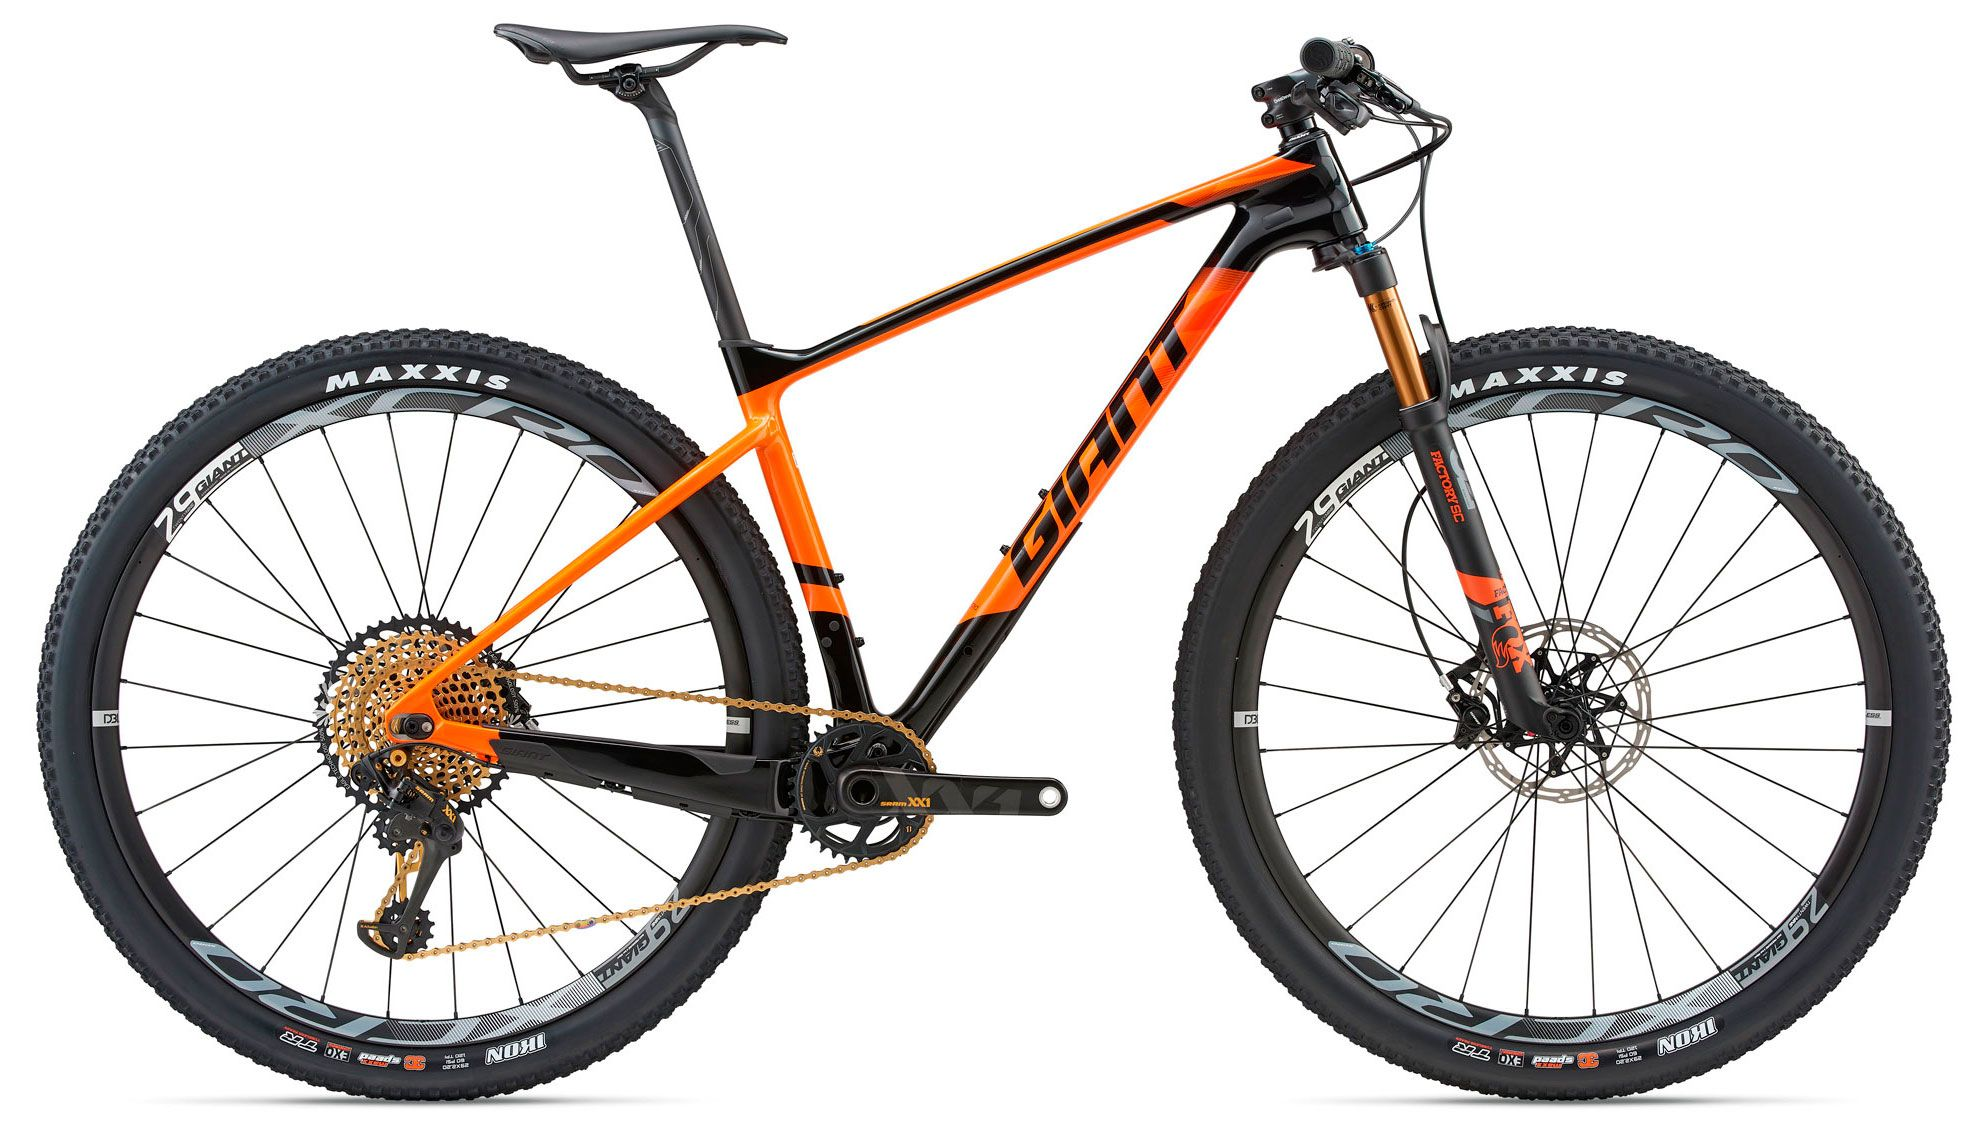 Велосипед Giant XTC Advanced 29er 0 2018 велосипед giant xtc advanced 27 5 2 2016